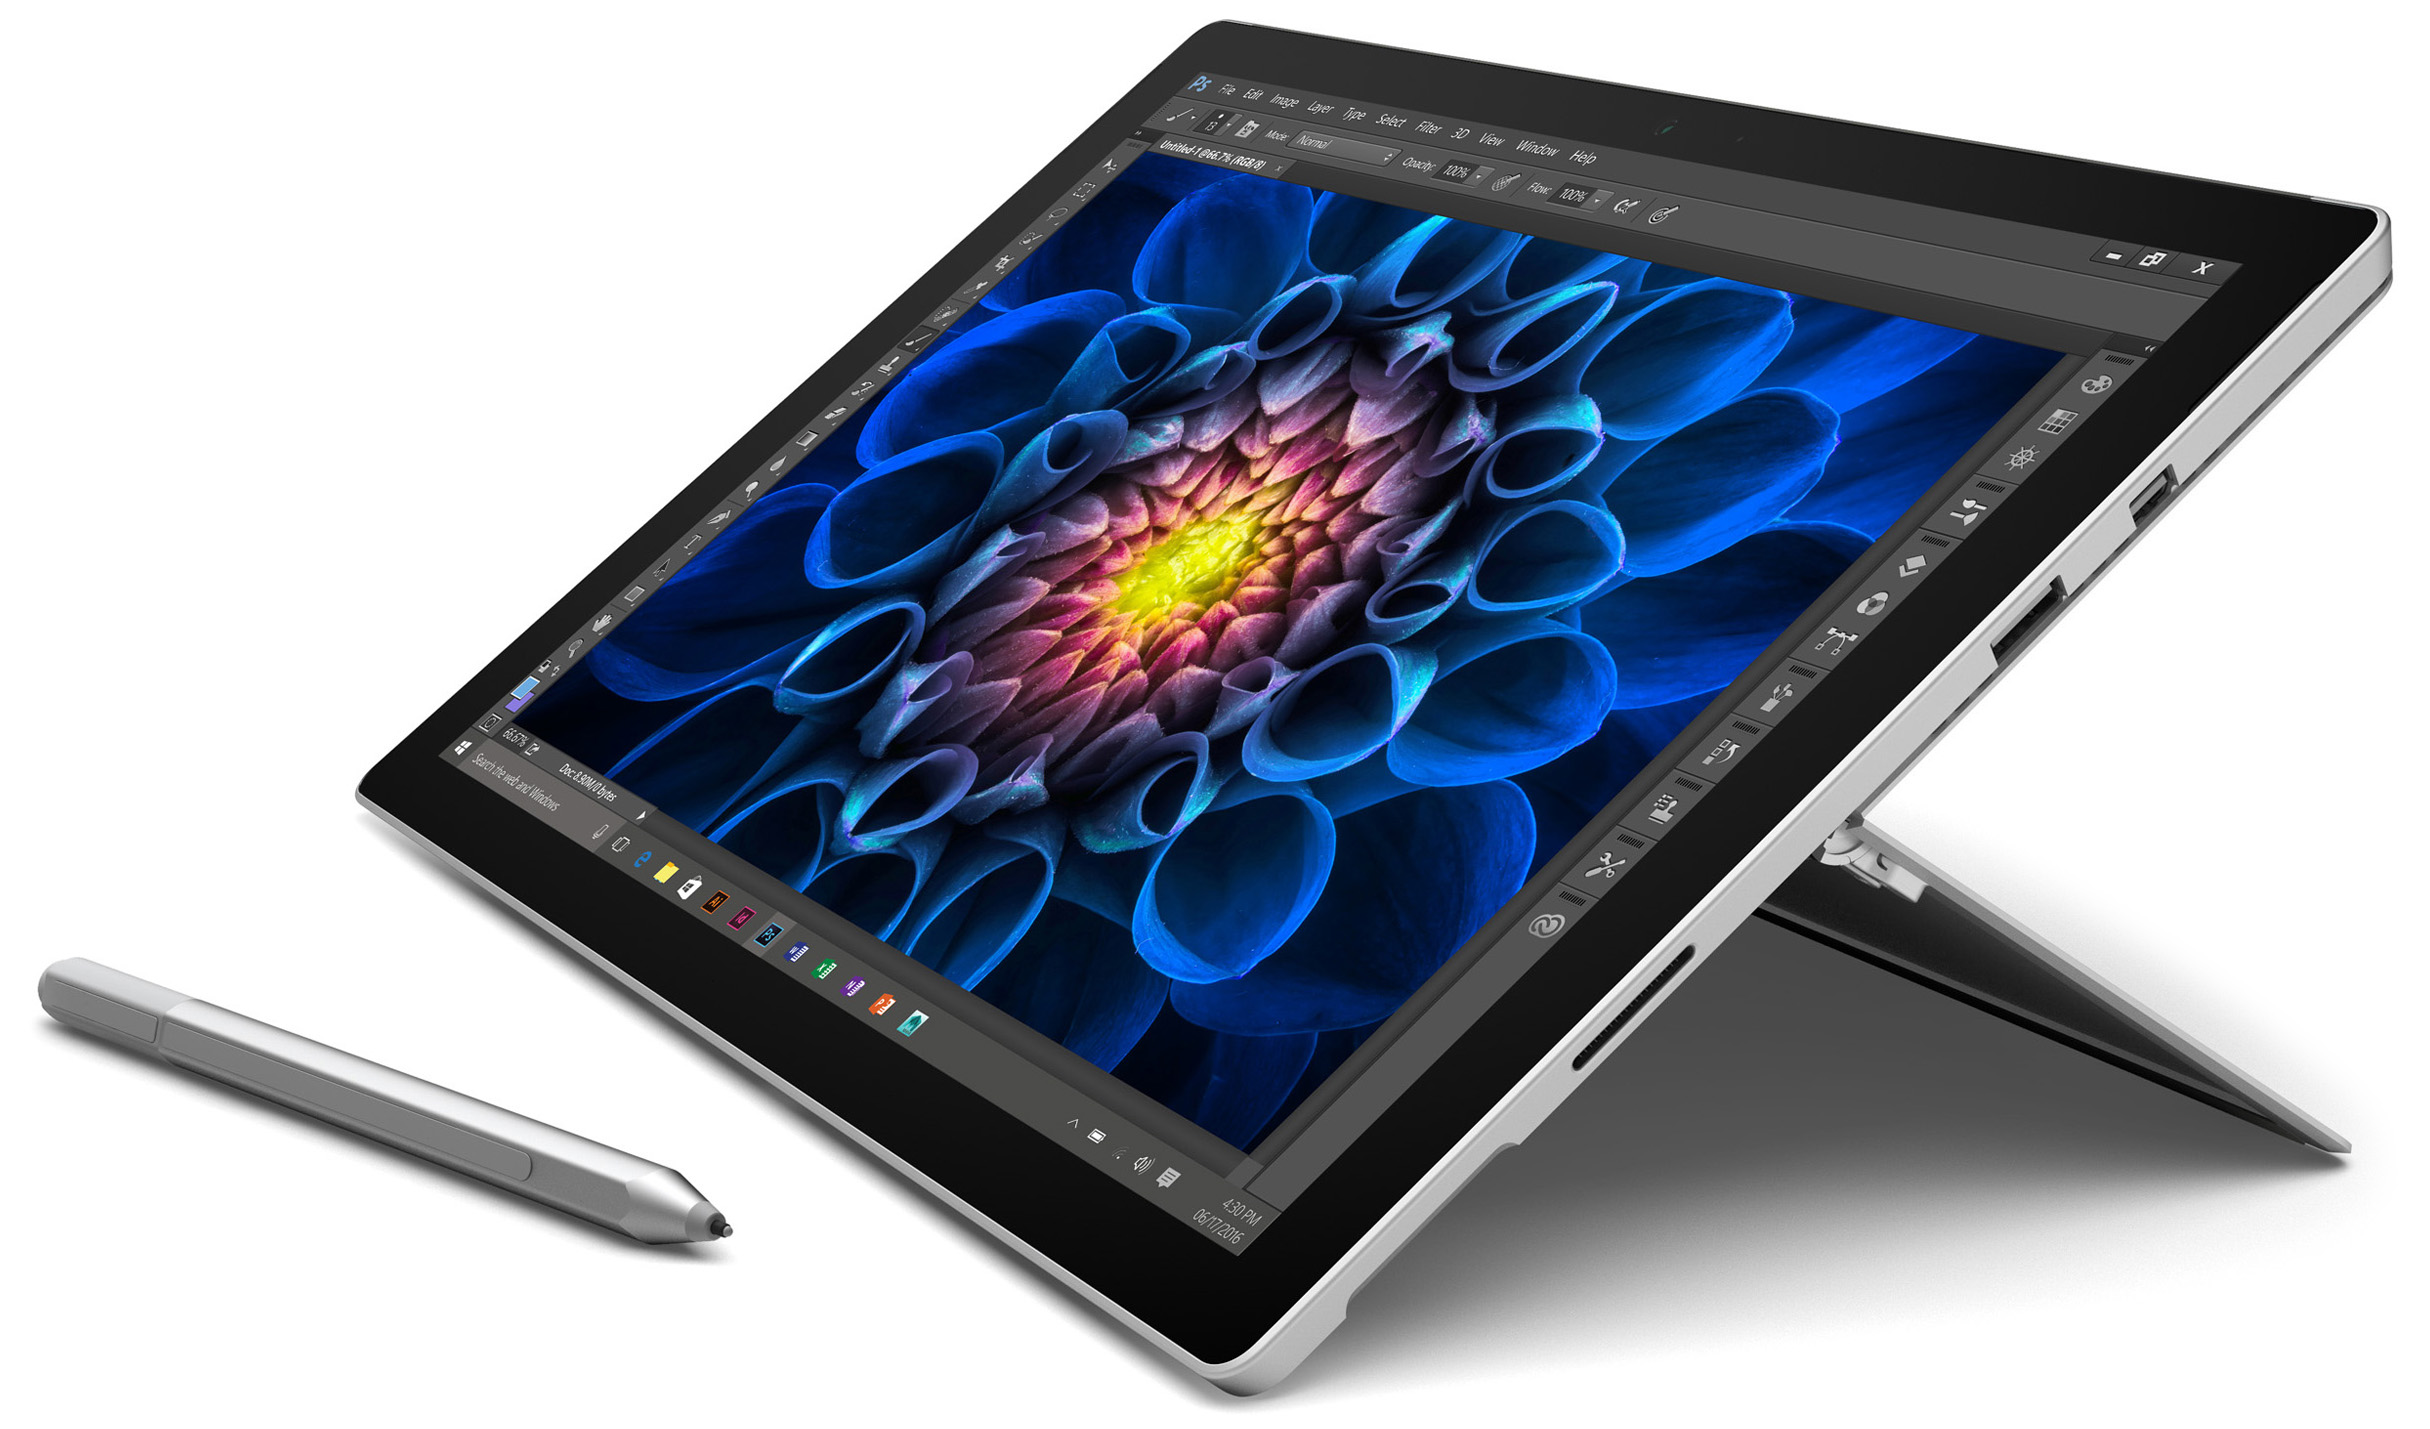 Microsoft Surface Pro 4 - 512GB / Intel Core i5